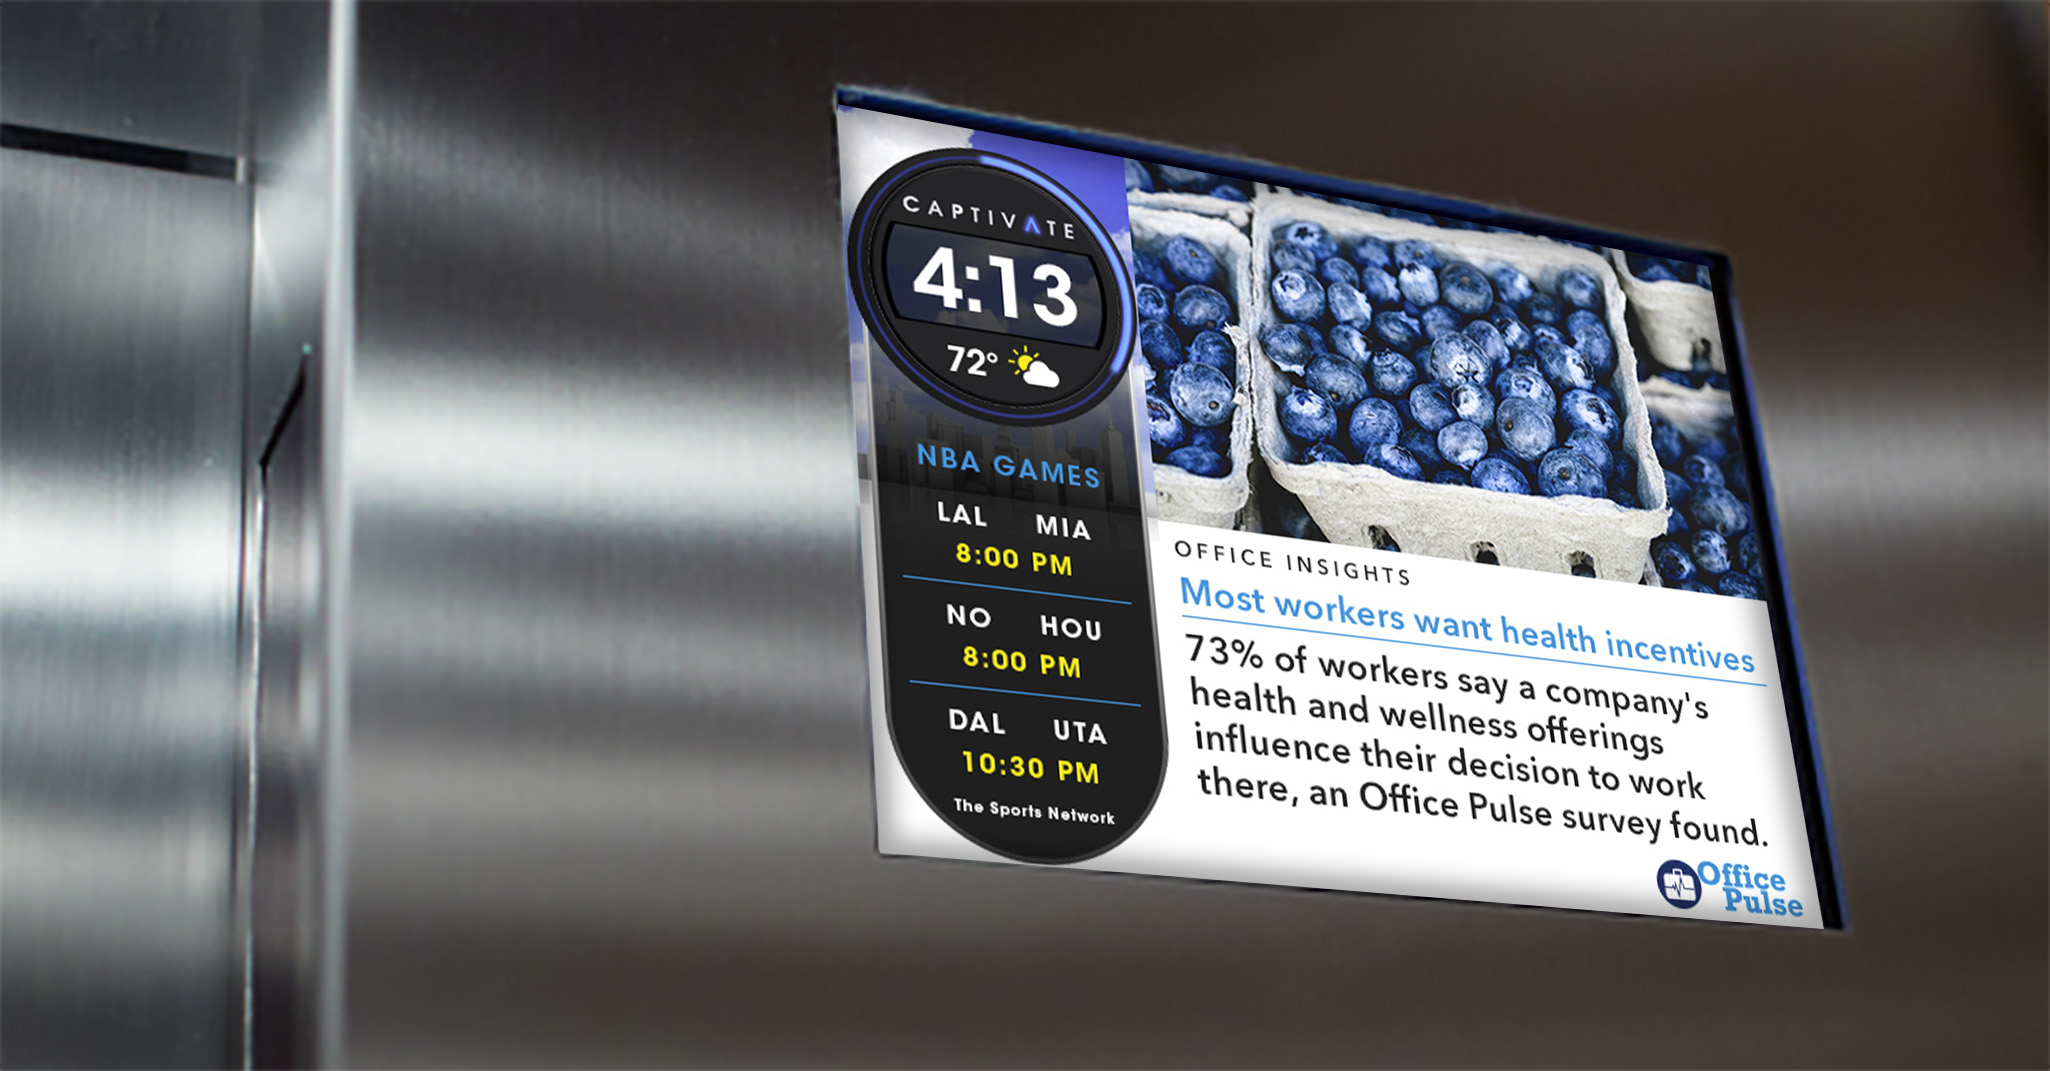 Captivate Elevator Screens - In Office Content and Advertising Solution